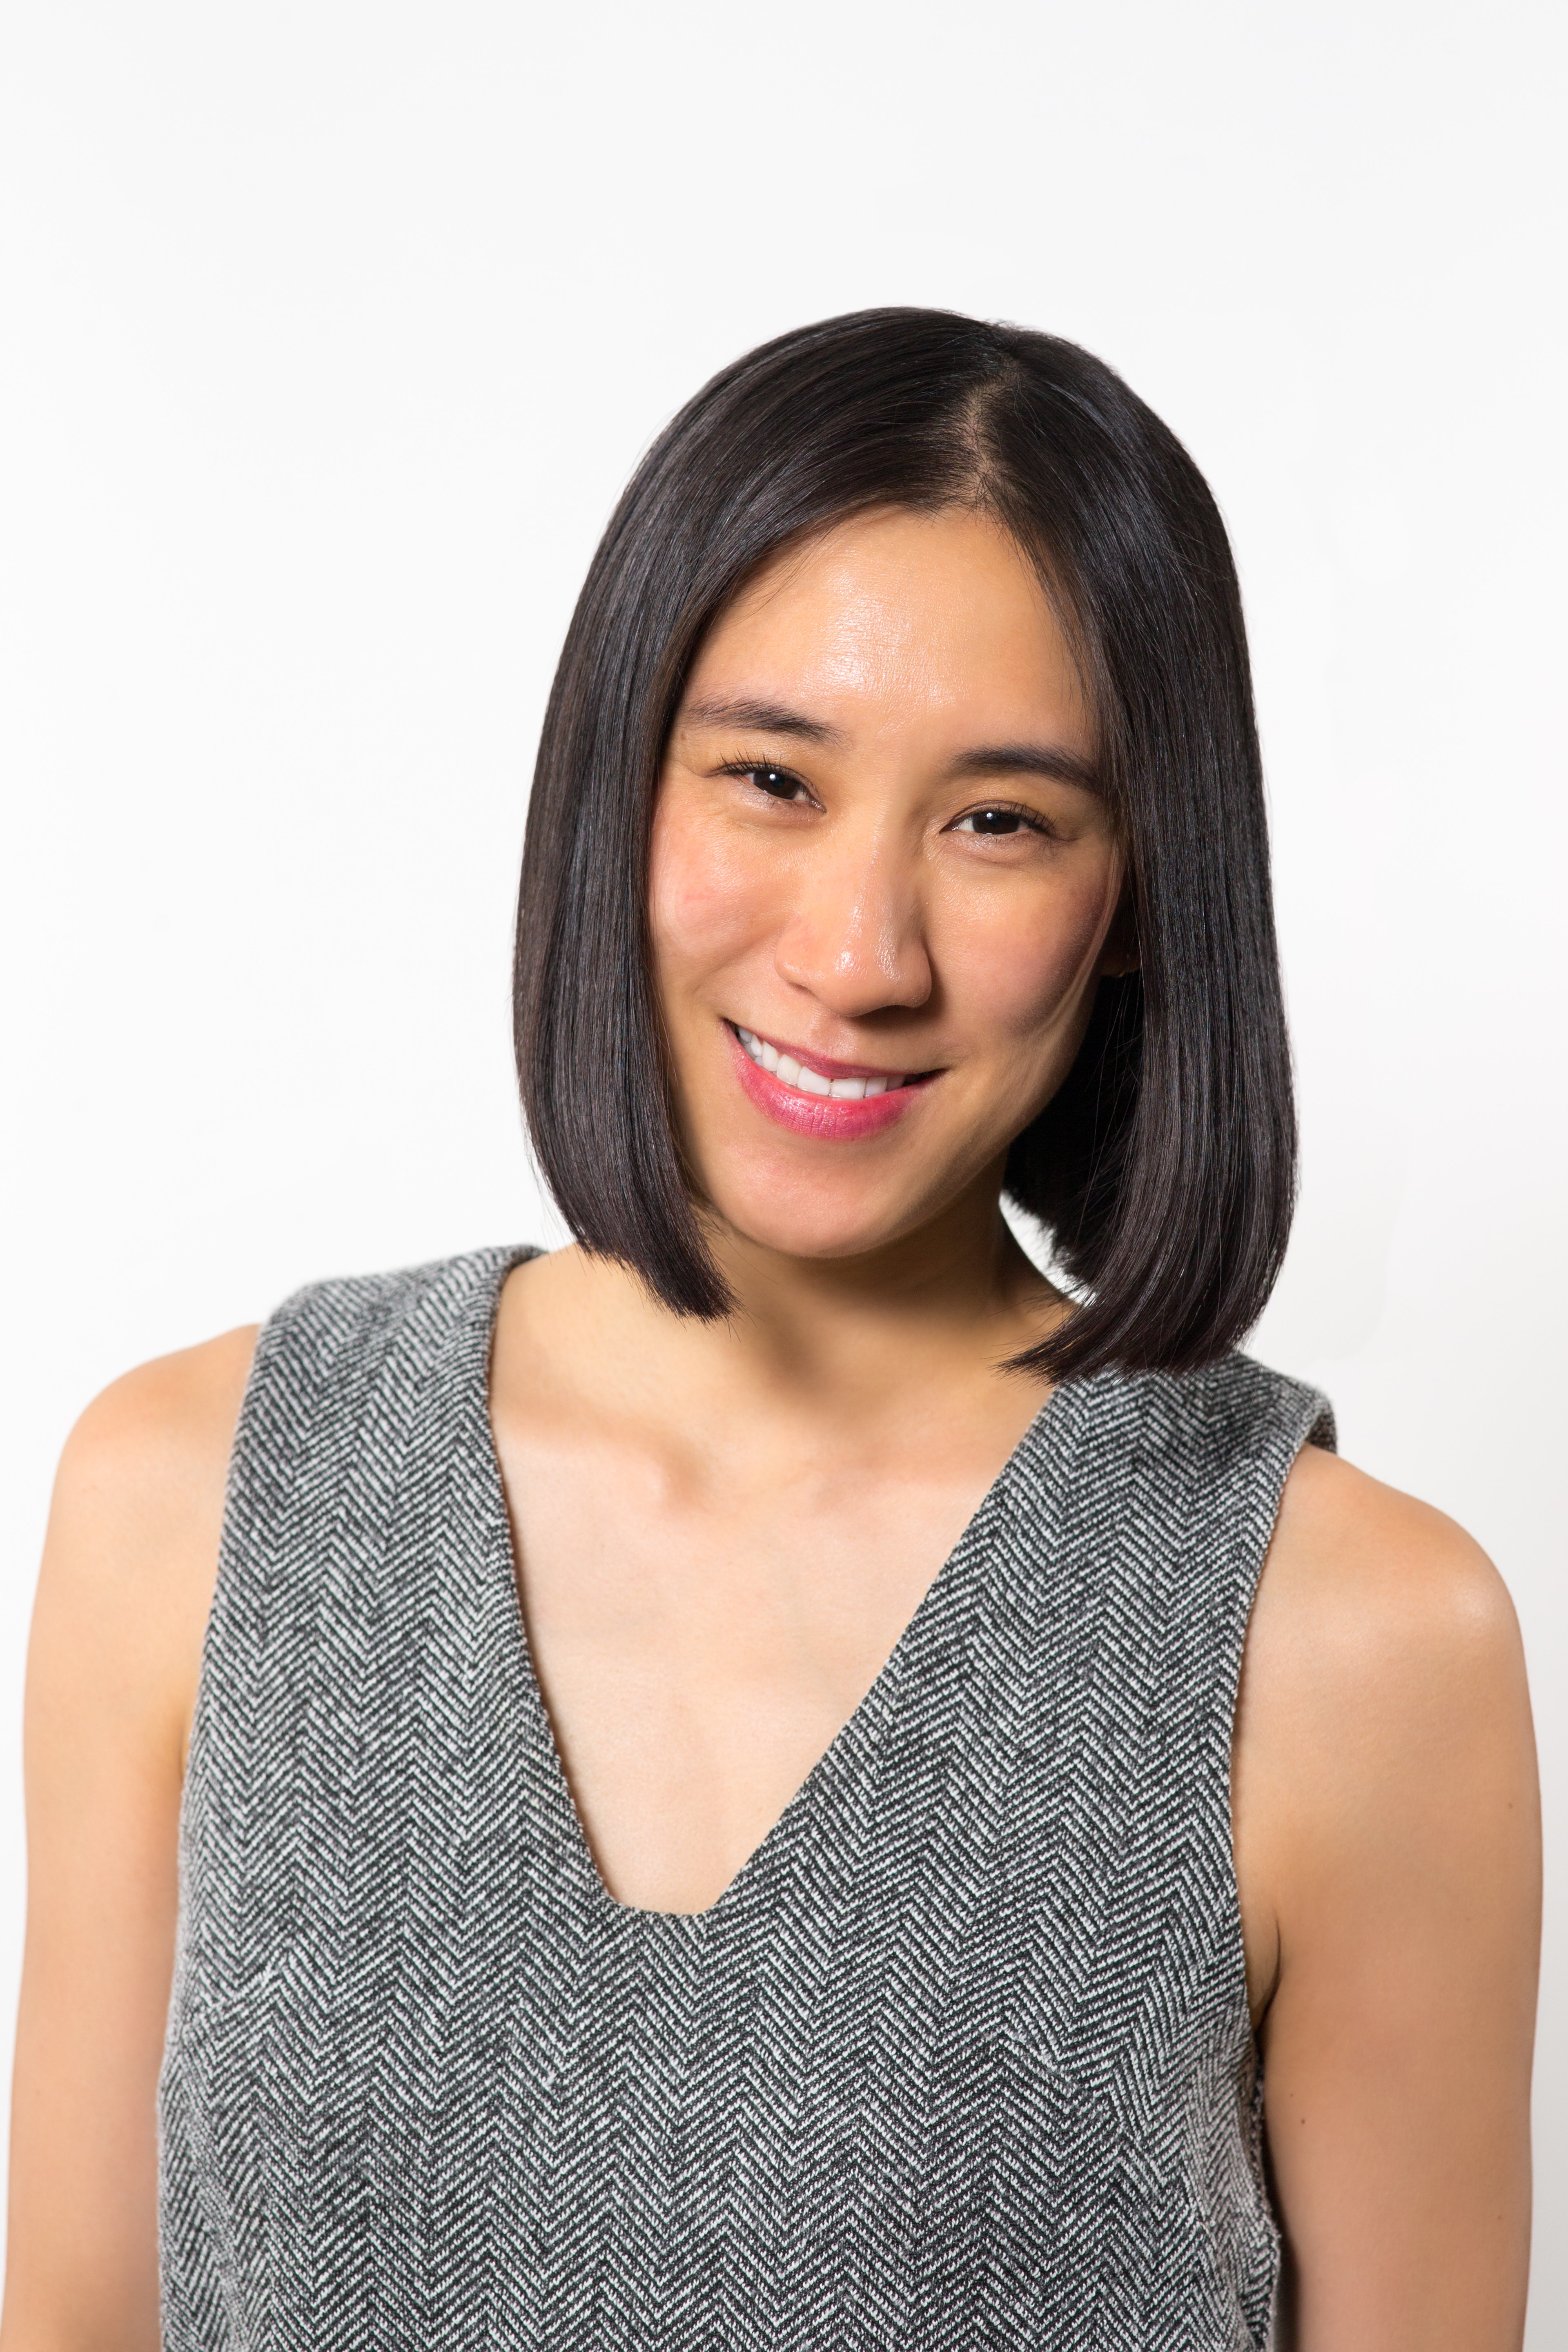 Instagram's Eva Chen: 'It's Not a Numbers Game'